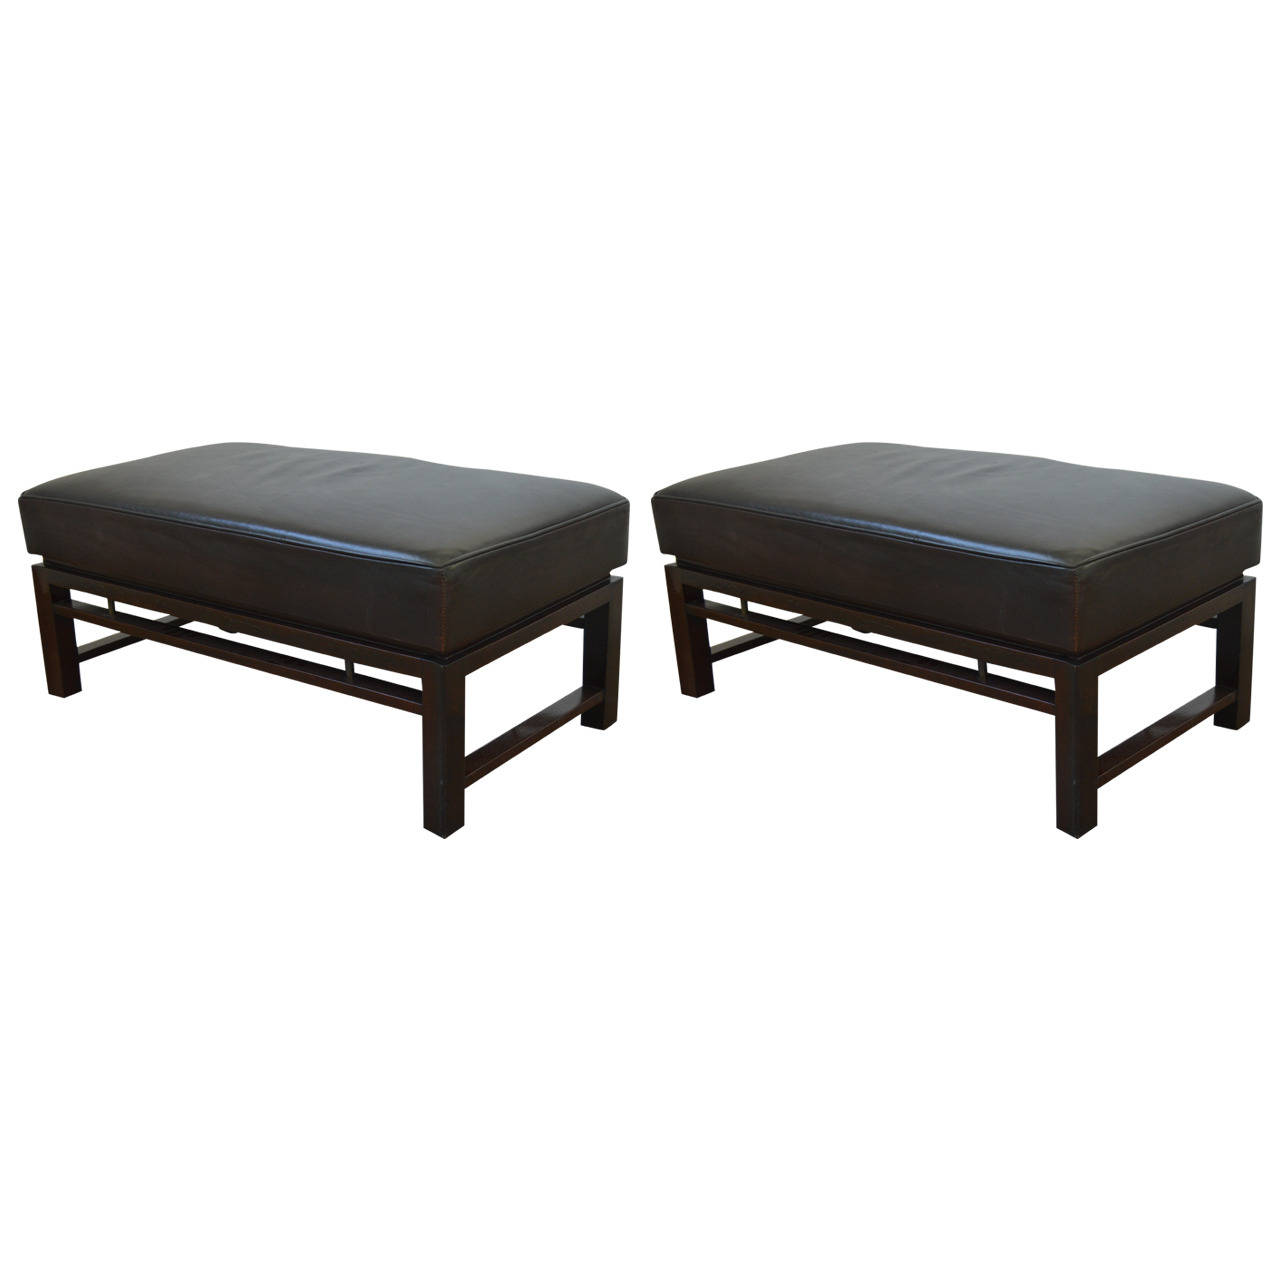 Pair of Leather Benches